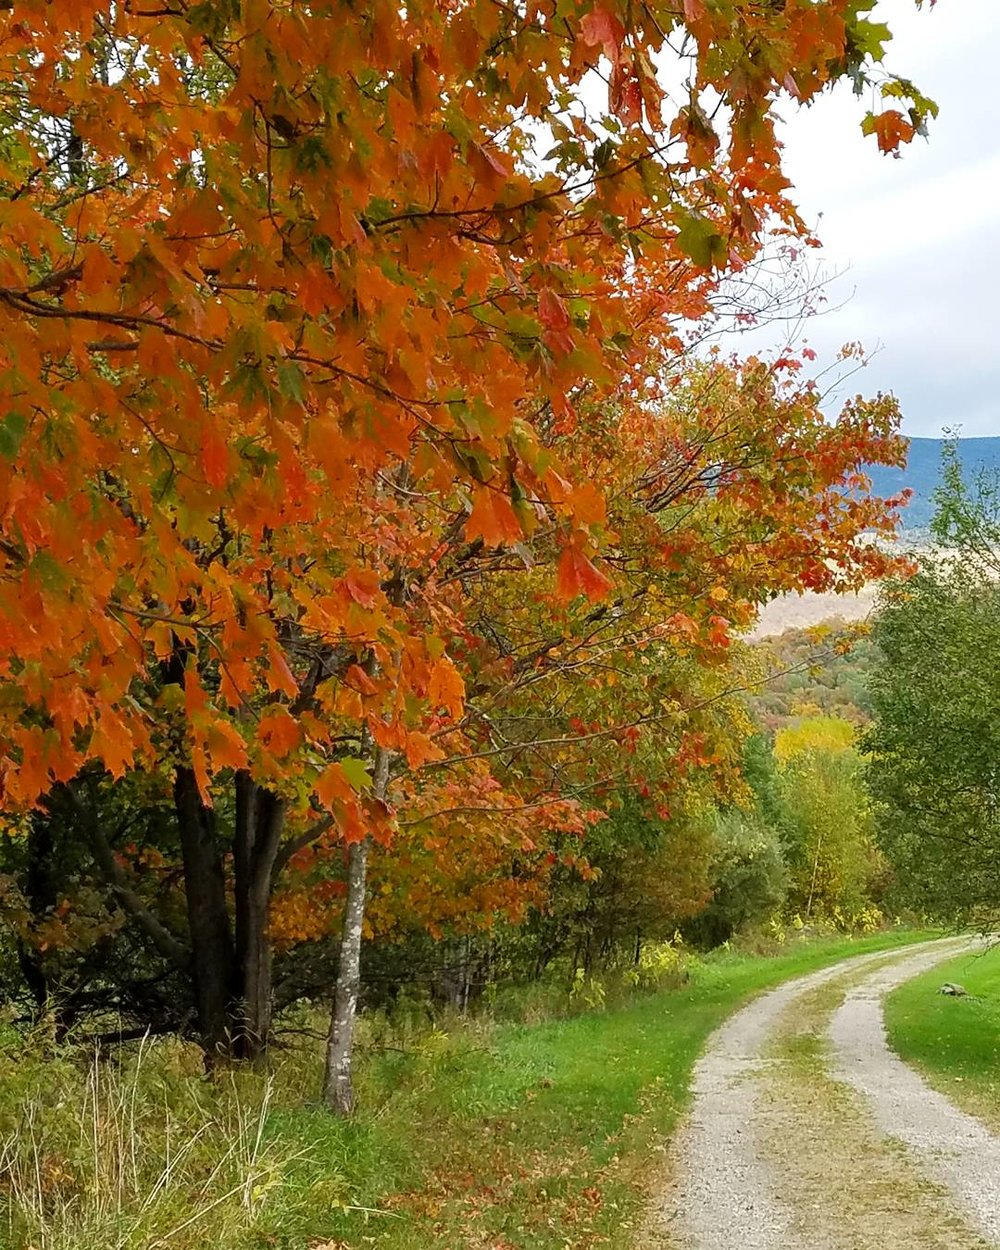 Enjoy a Scenic Drive! - Slow down and enjoy some of the beautiful scenery Vermont has to offer.